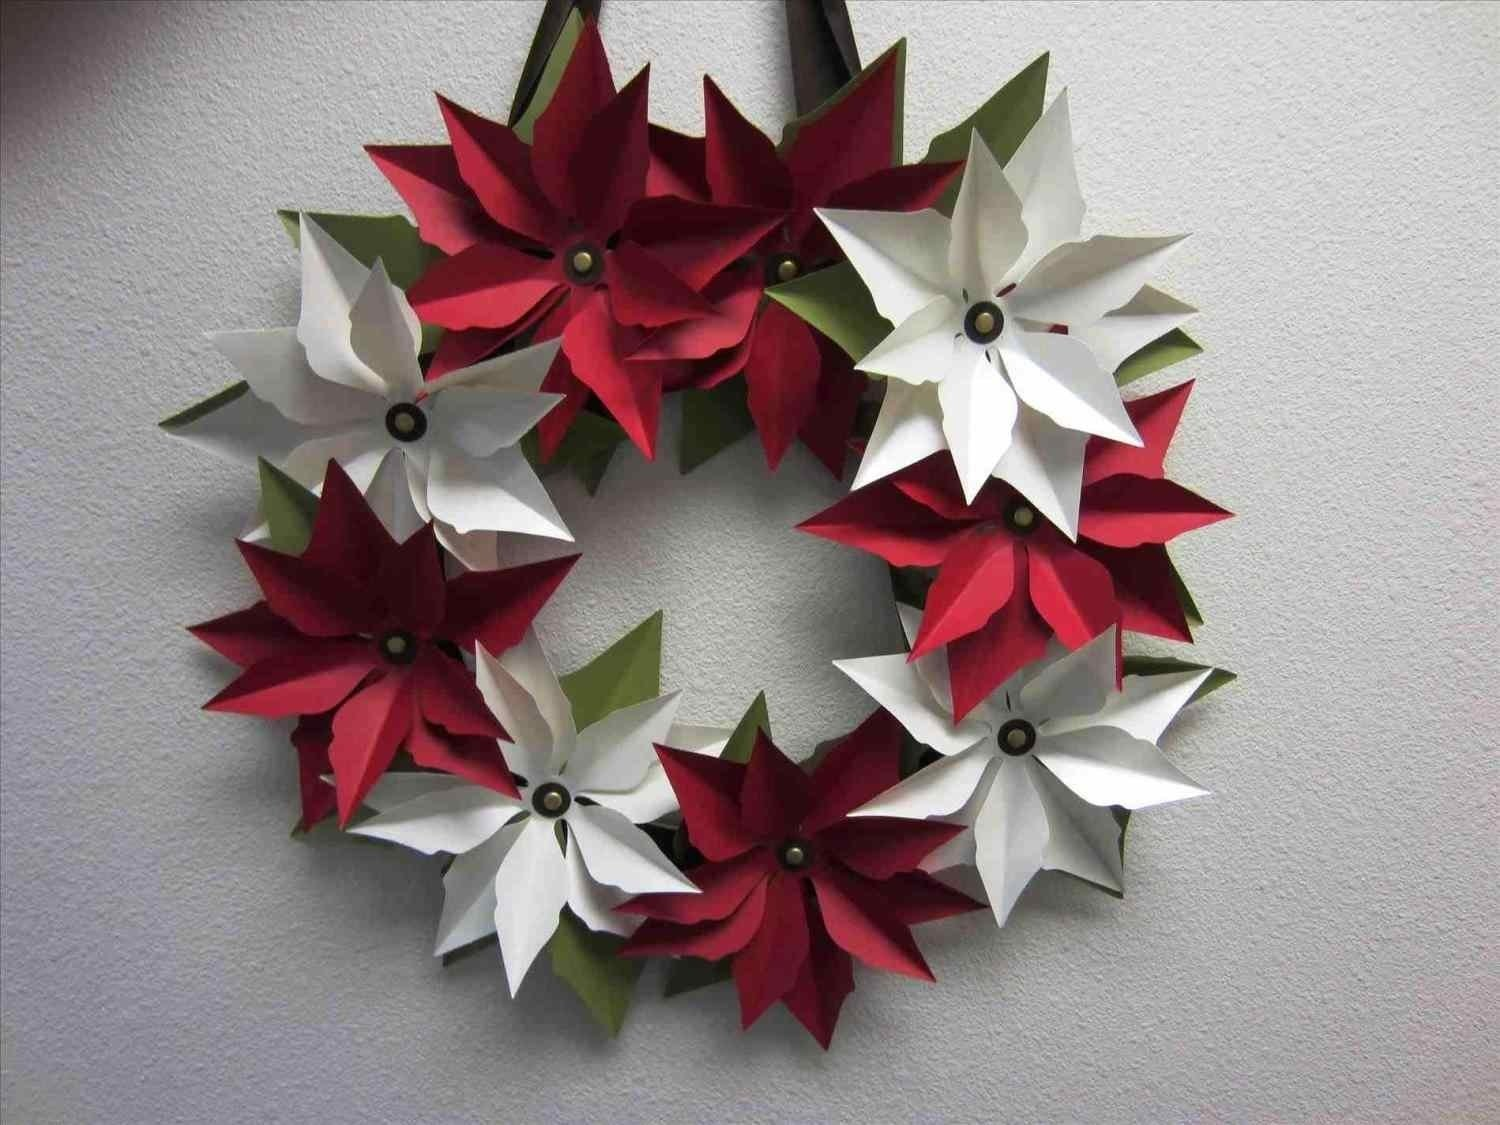 10 Unique Christmas Craft Ideas For Adults Rainest Islands Ferry Simple Crafts